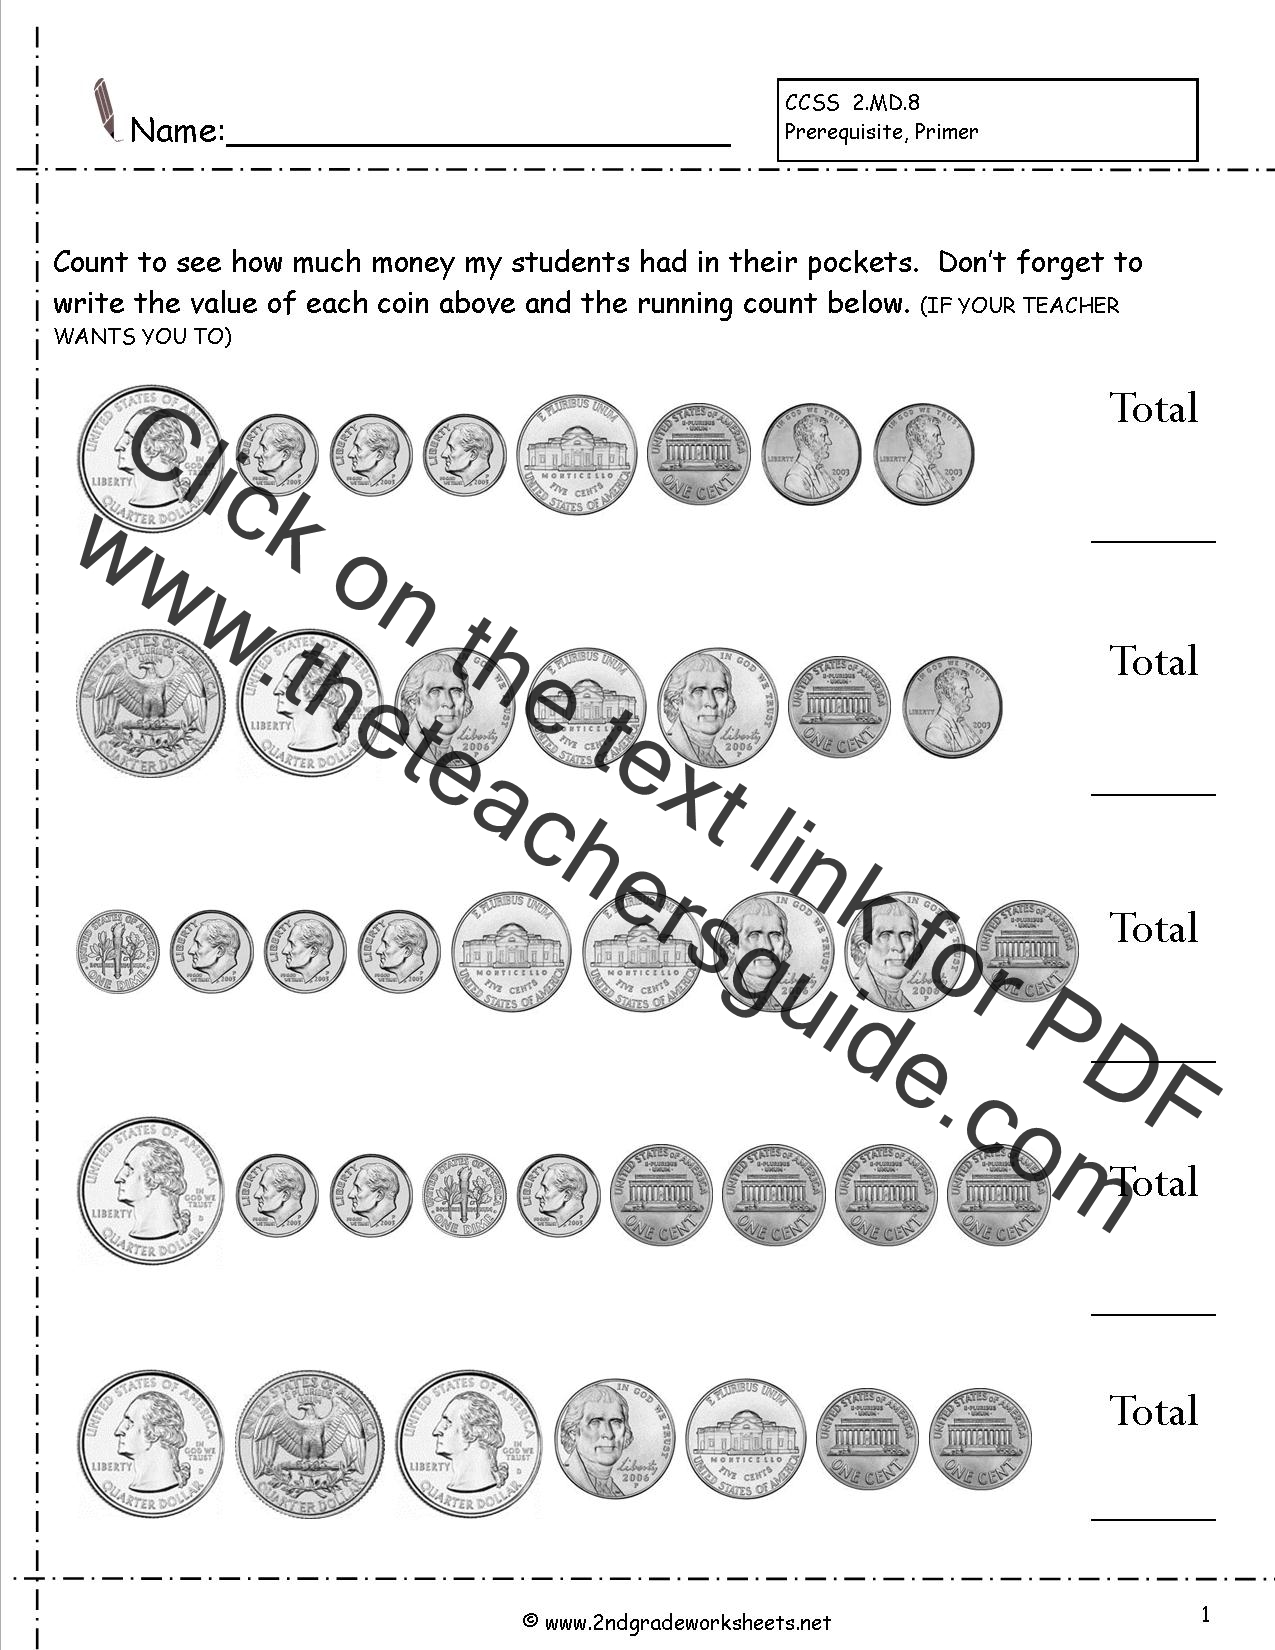 Counting Coins and Money Worksheets and Printouts – Printable Math Worksheets for Second Grade